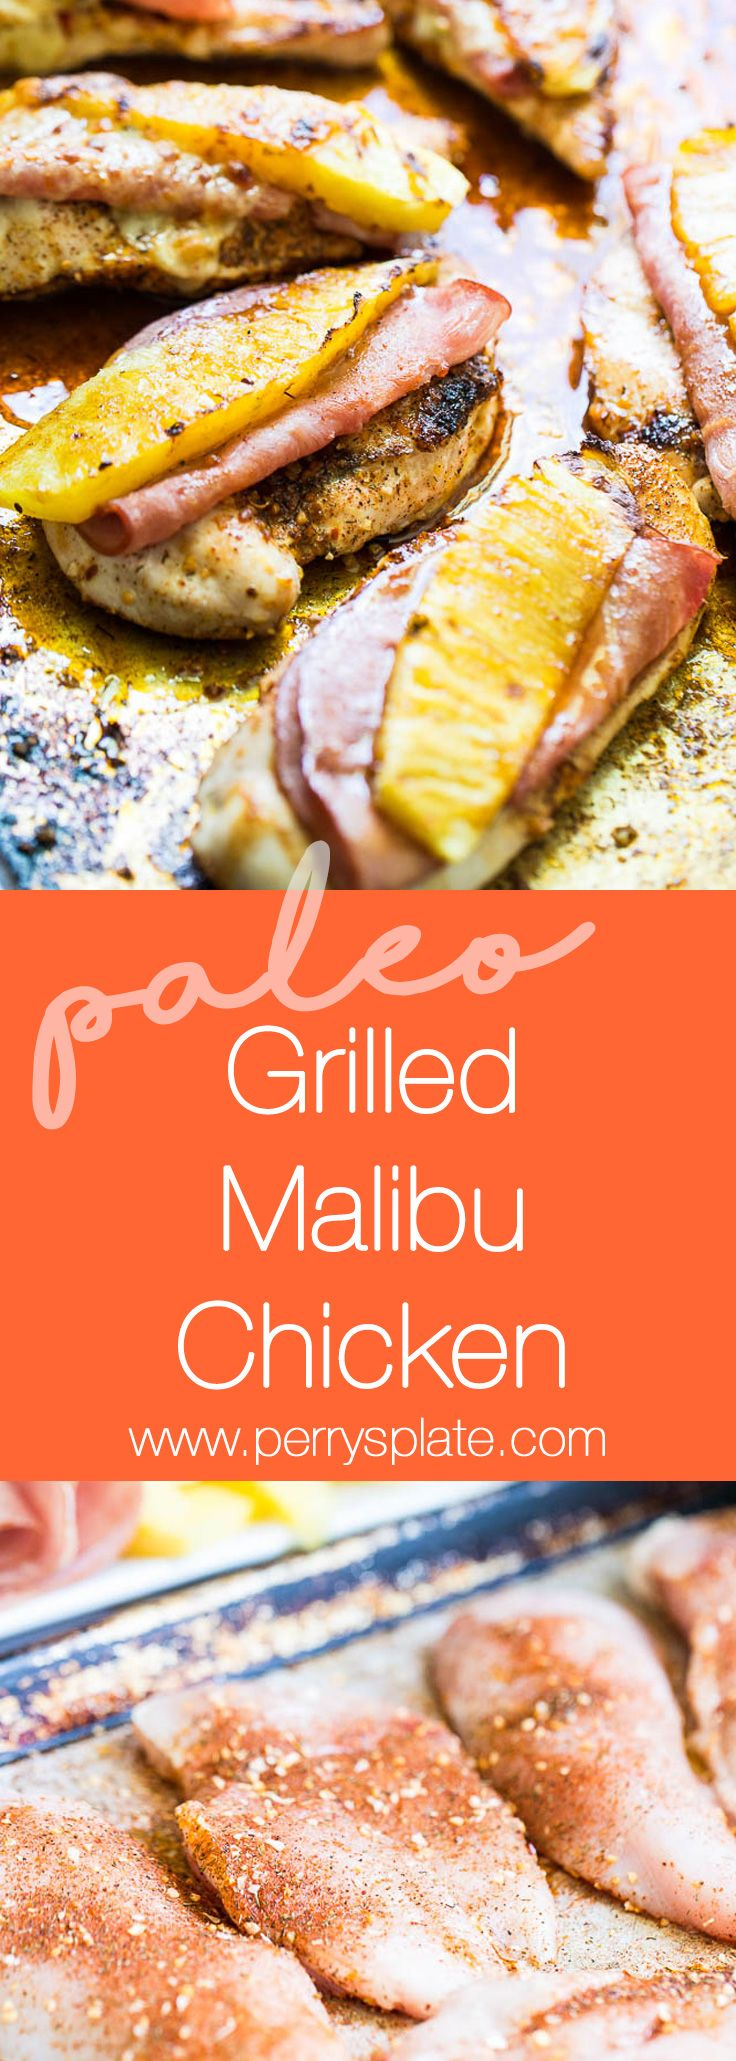 Paleo Grilled Malibu | Grilling recipes | chicken recipes | pineapple recipes | perrysplate.com